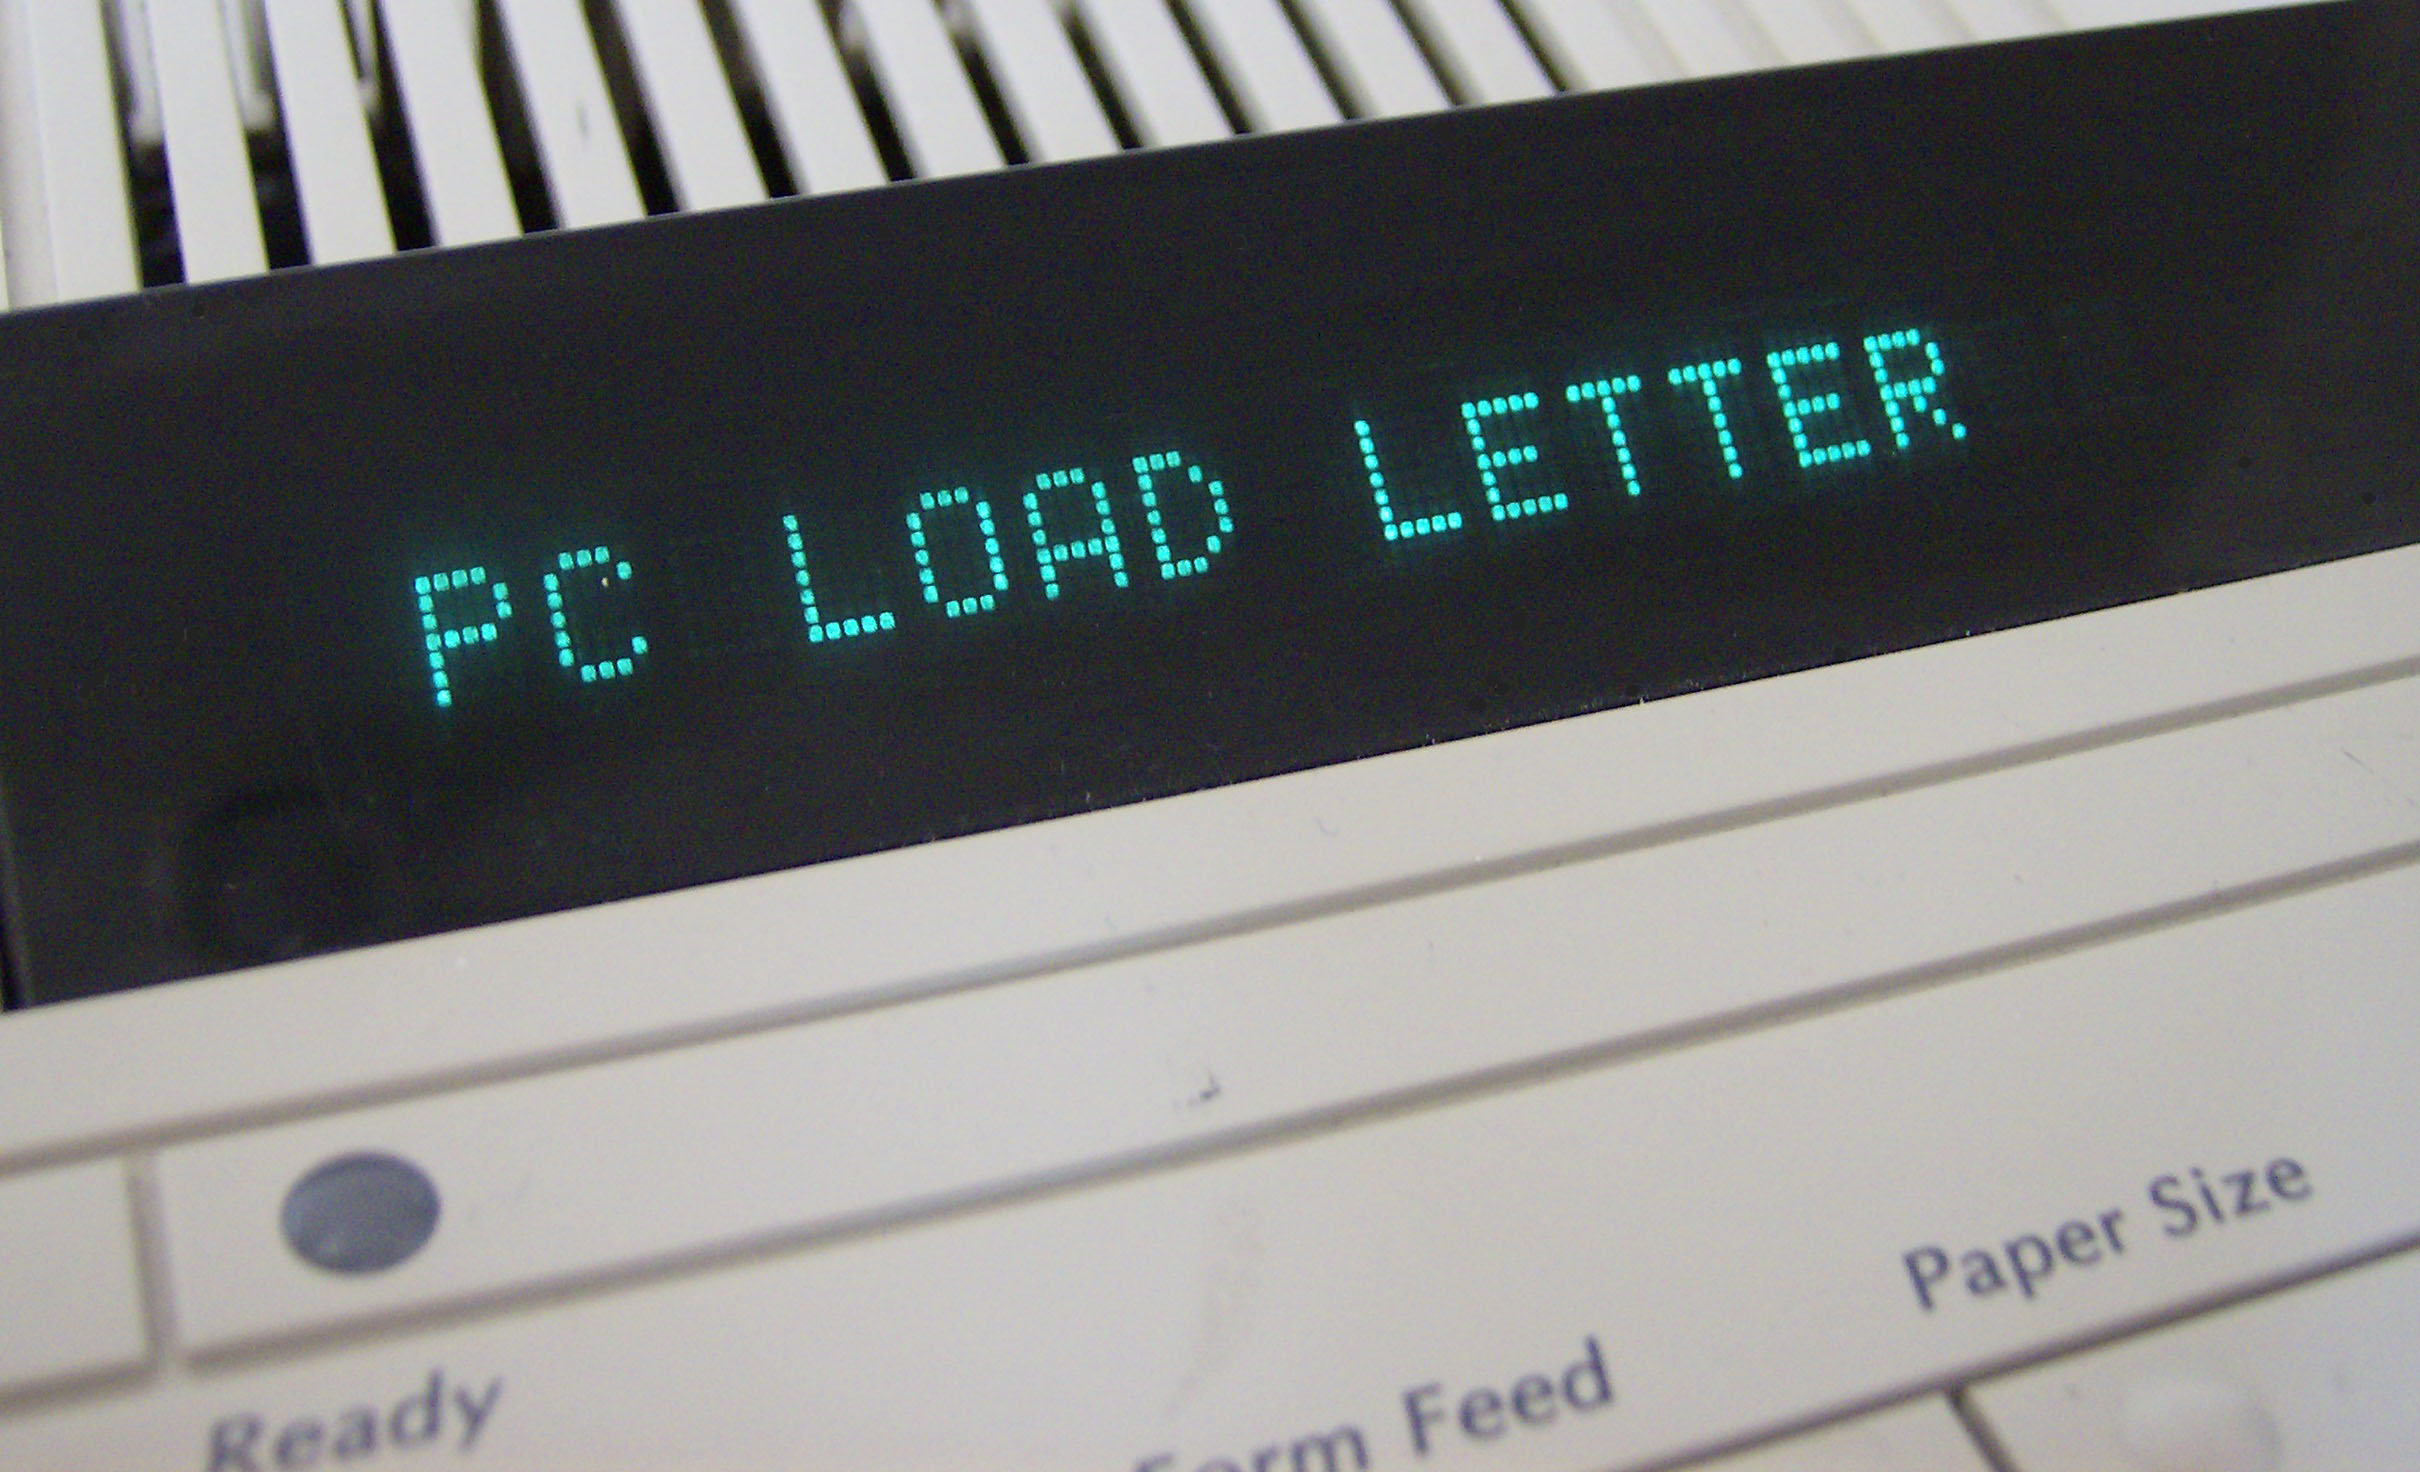 File:PC Load Letter.jpg - Wikipedia, the free encyclopedia